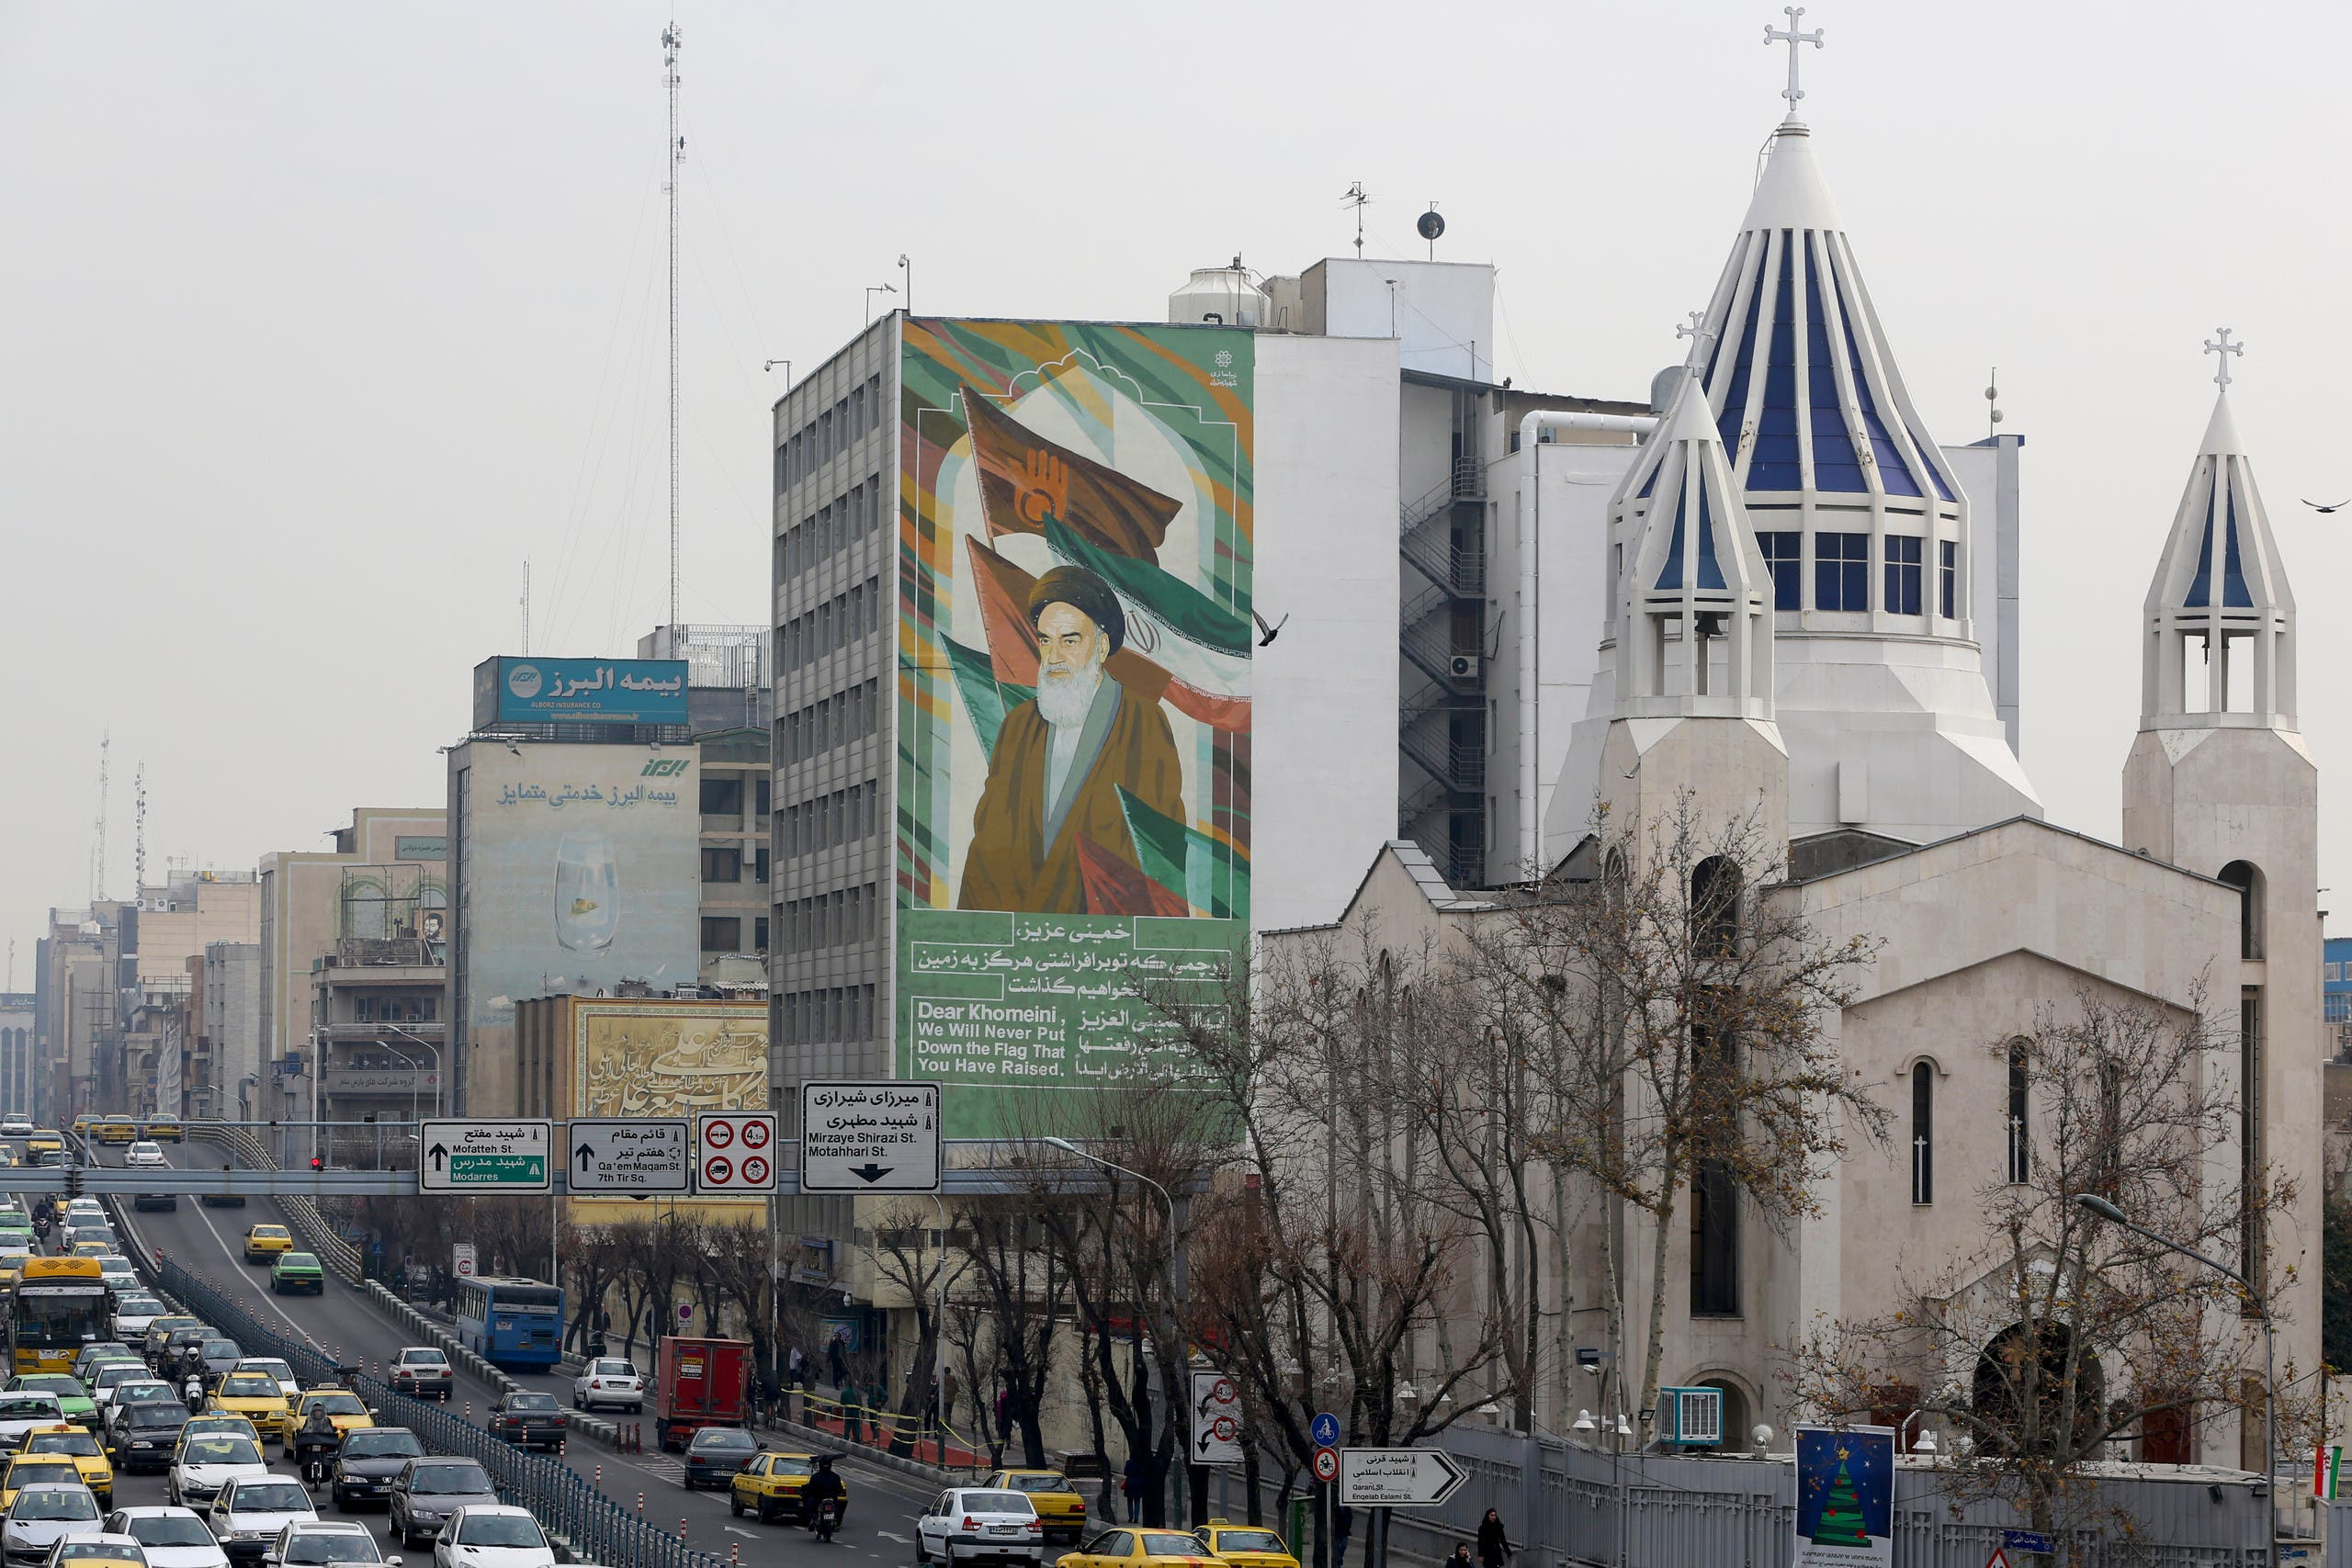 The Saint Sarkis Armenian Cathedral, next to a building bearing a drawing of the late founder of the Islamic Republic Ruhollah Khomeini, in Tehran on January 1, 2020. (AFP)